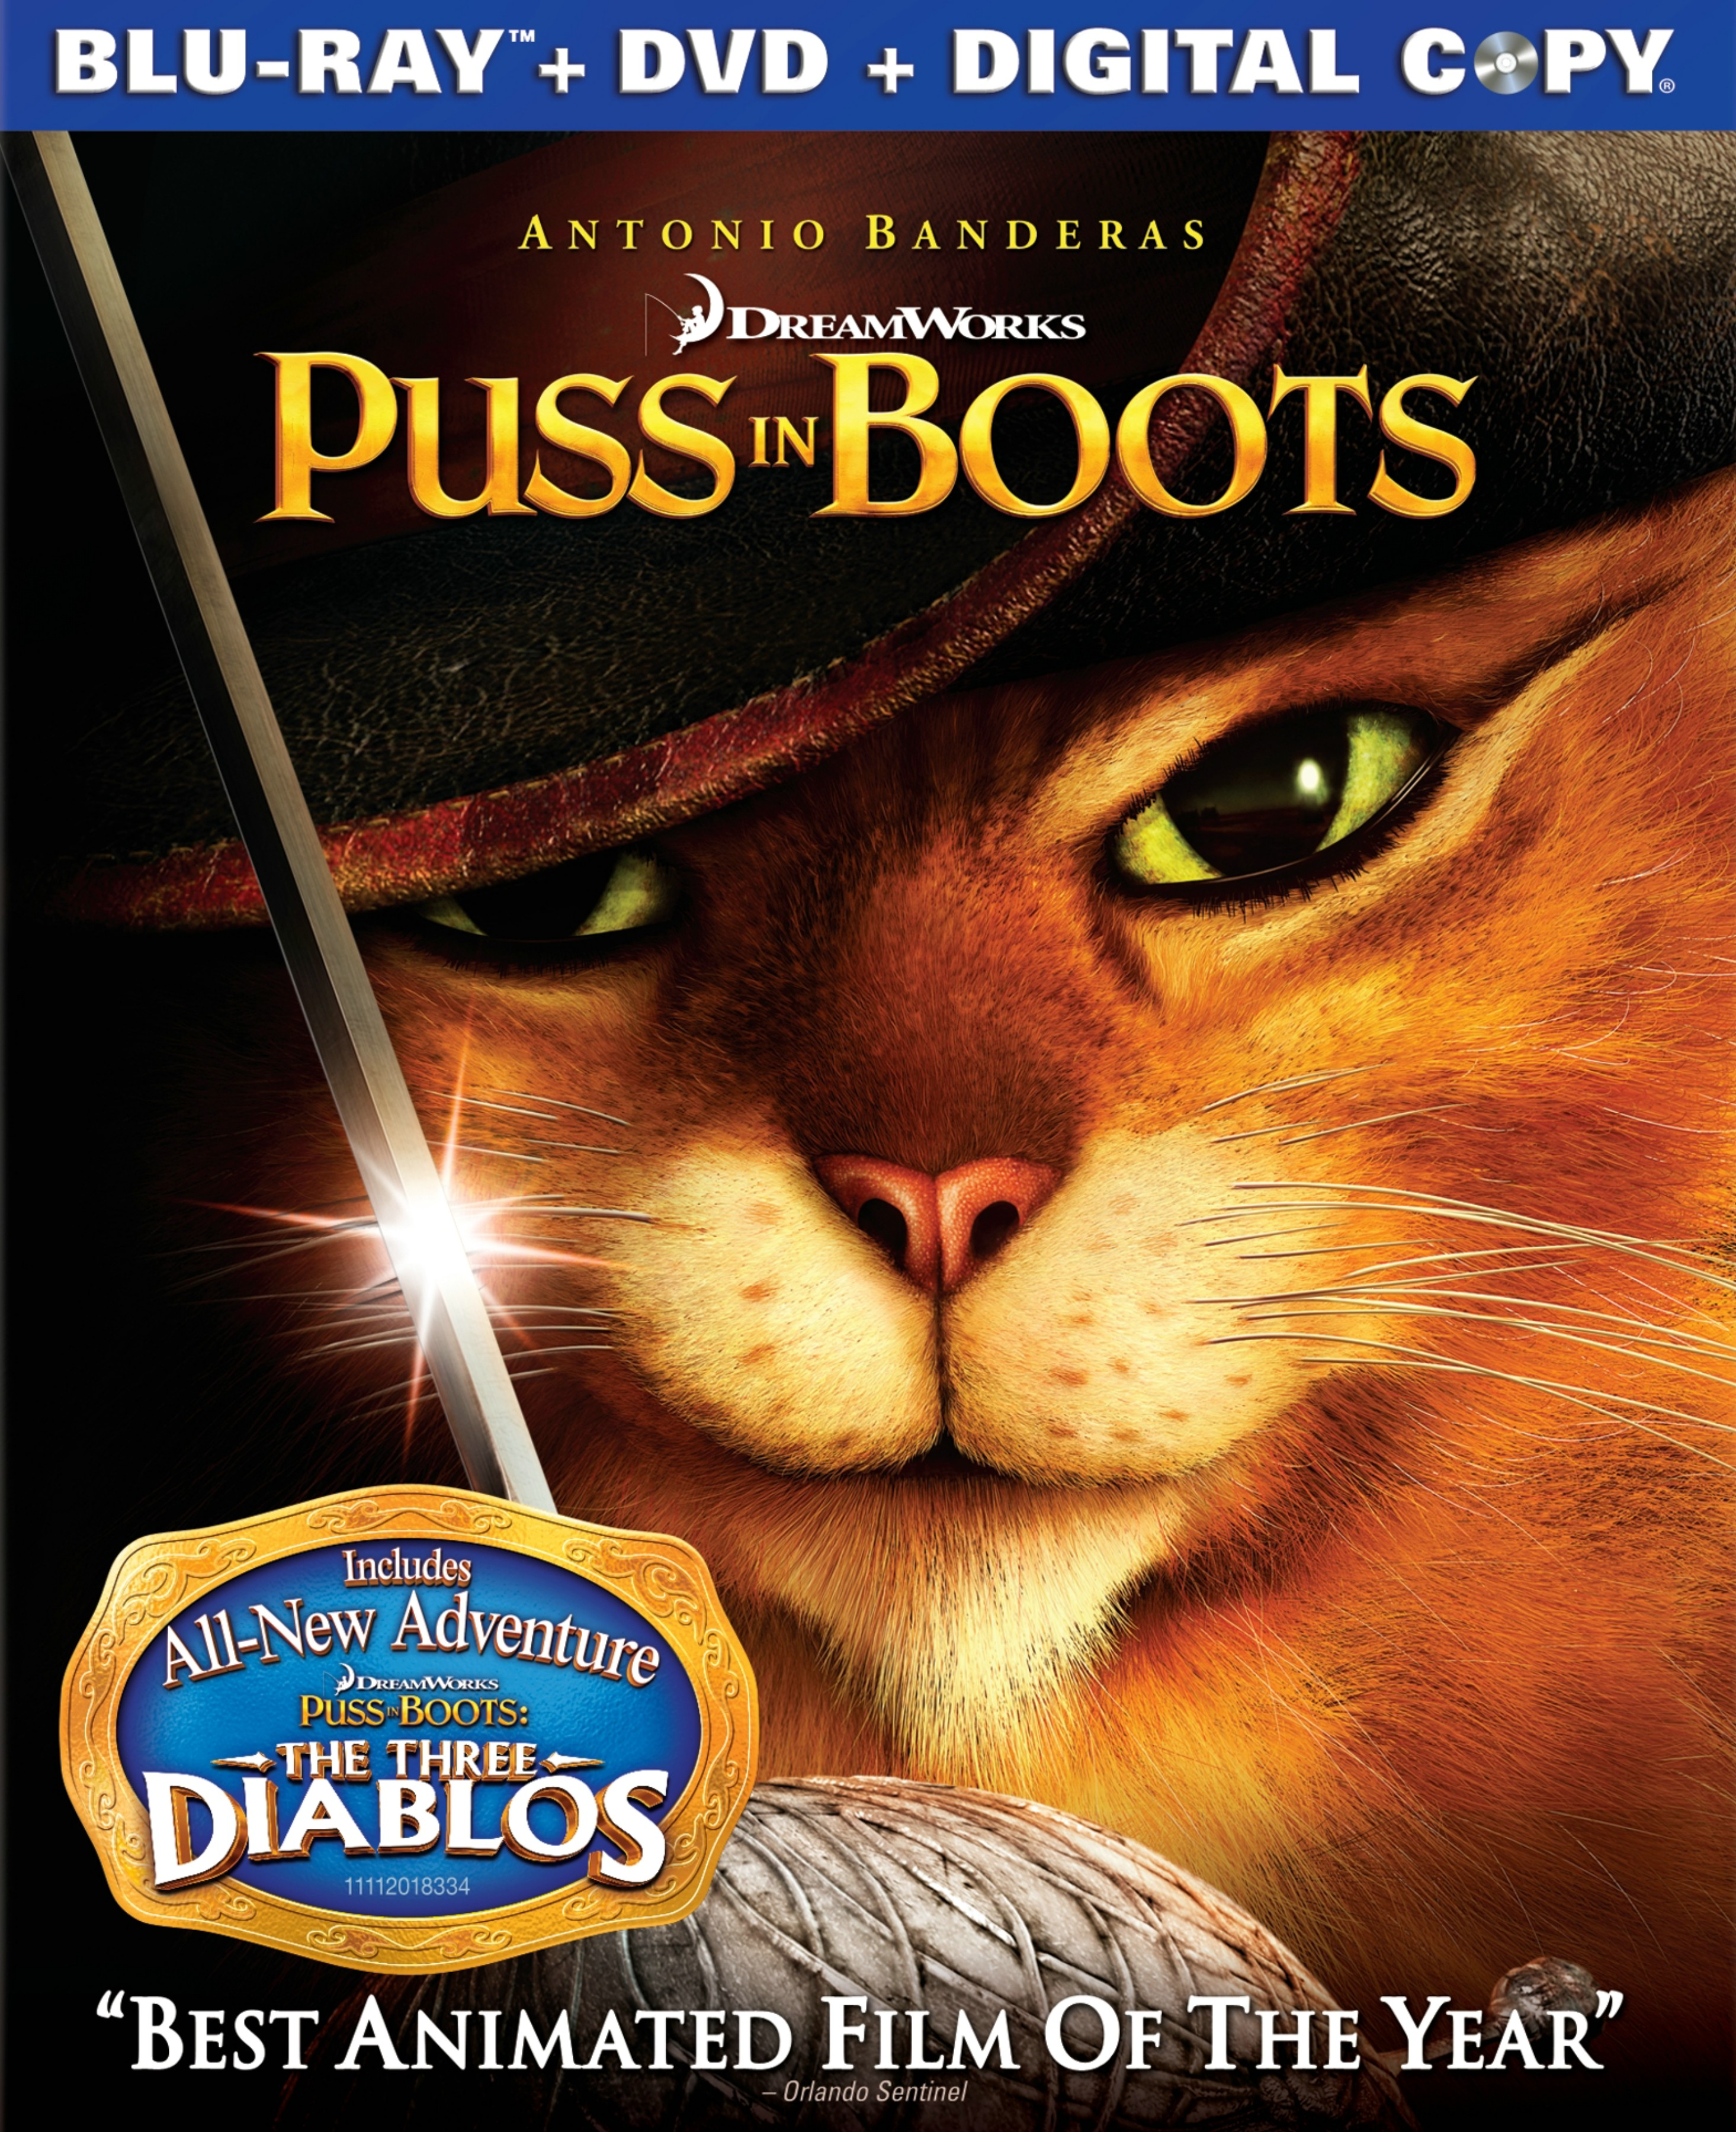 Puss in Boots Blu ray Box Art